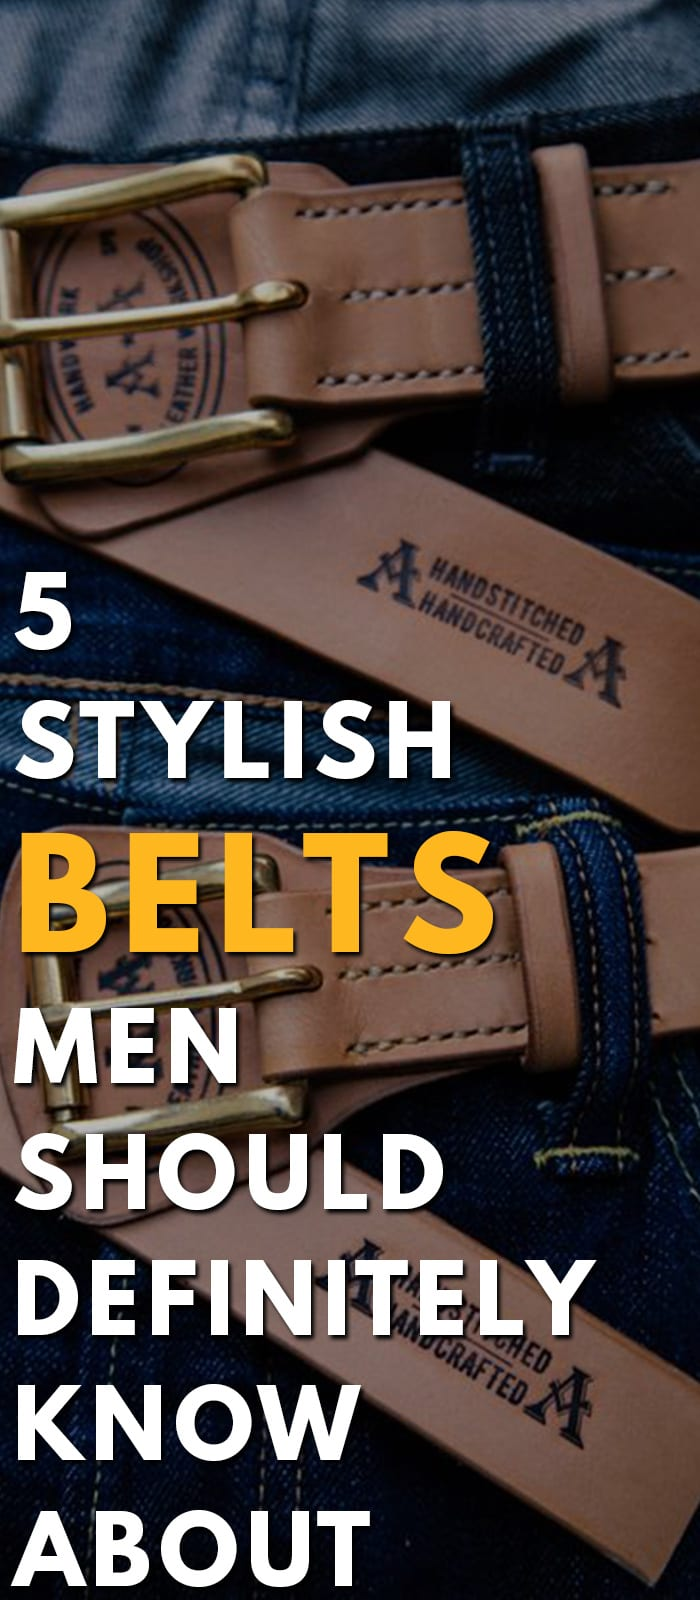 5 Stylish Belts Men Should Definitely Know About